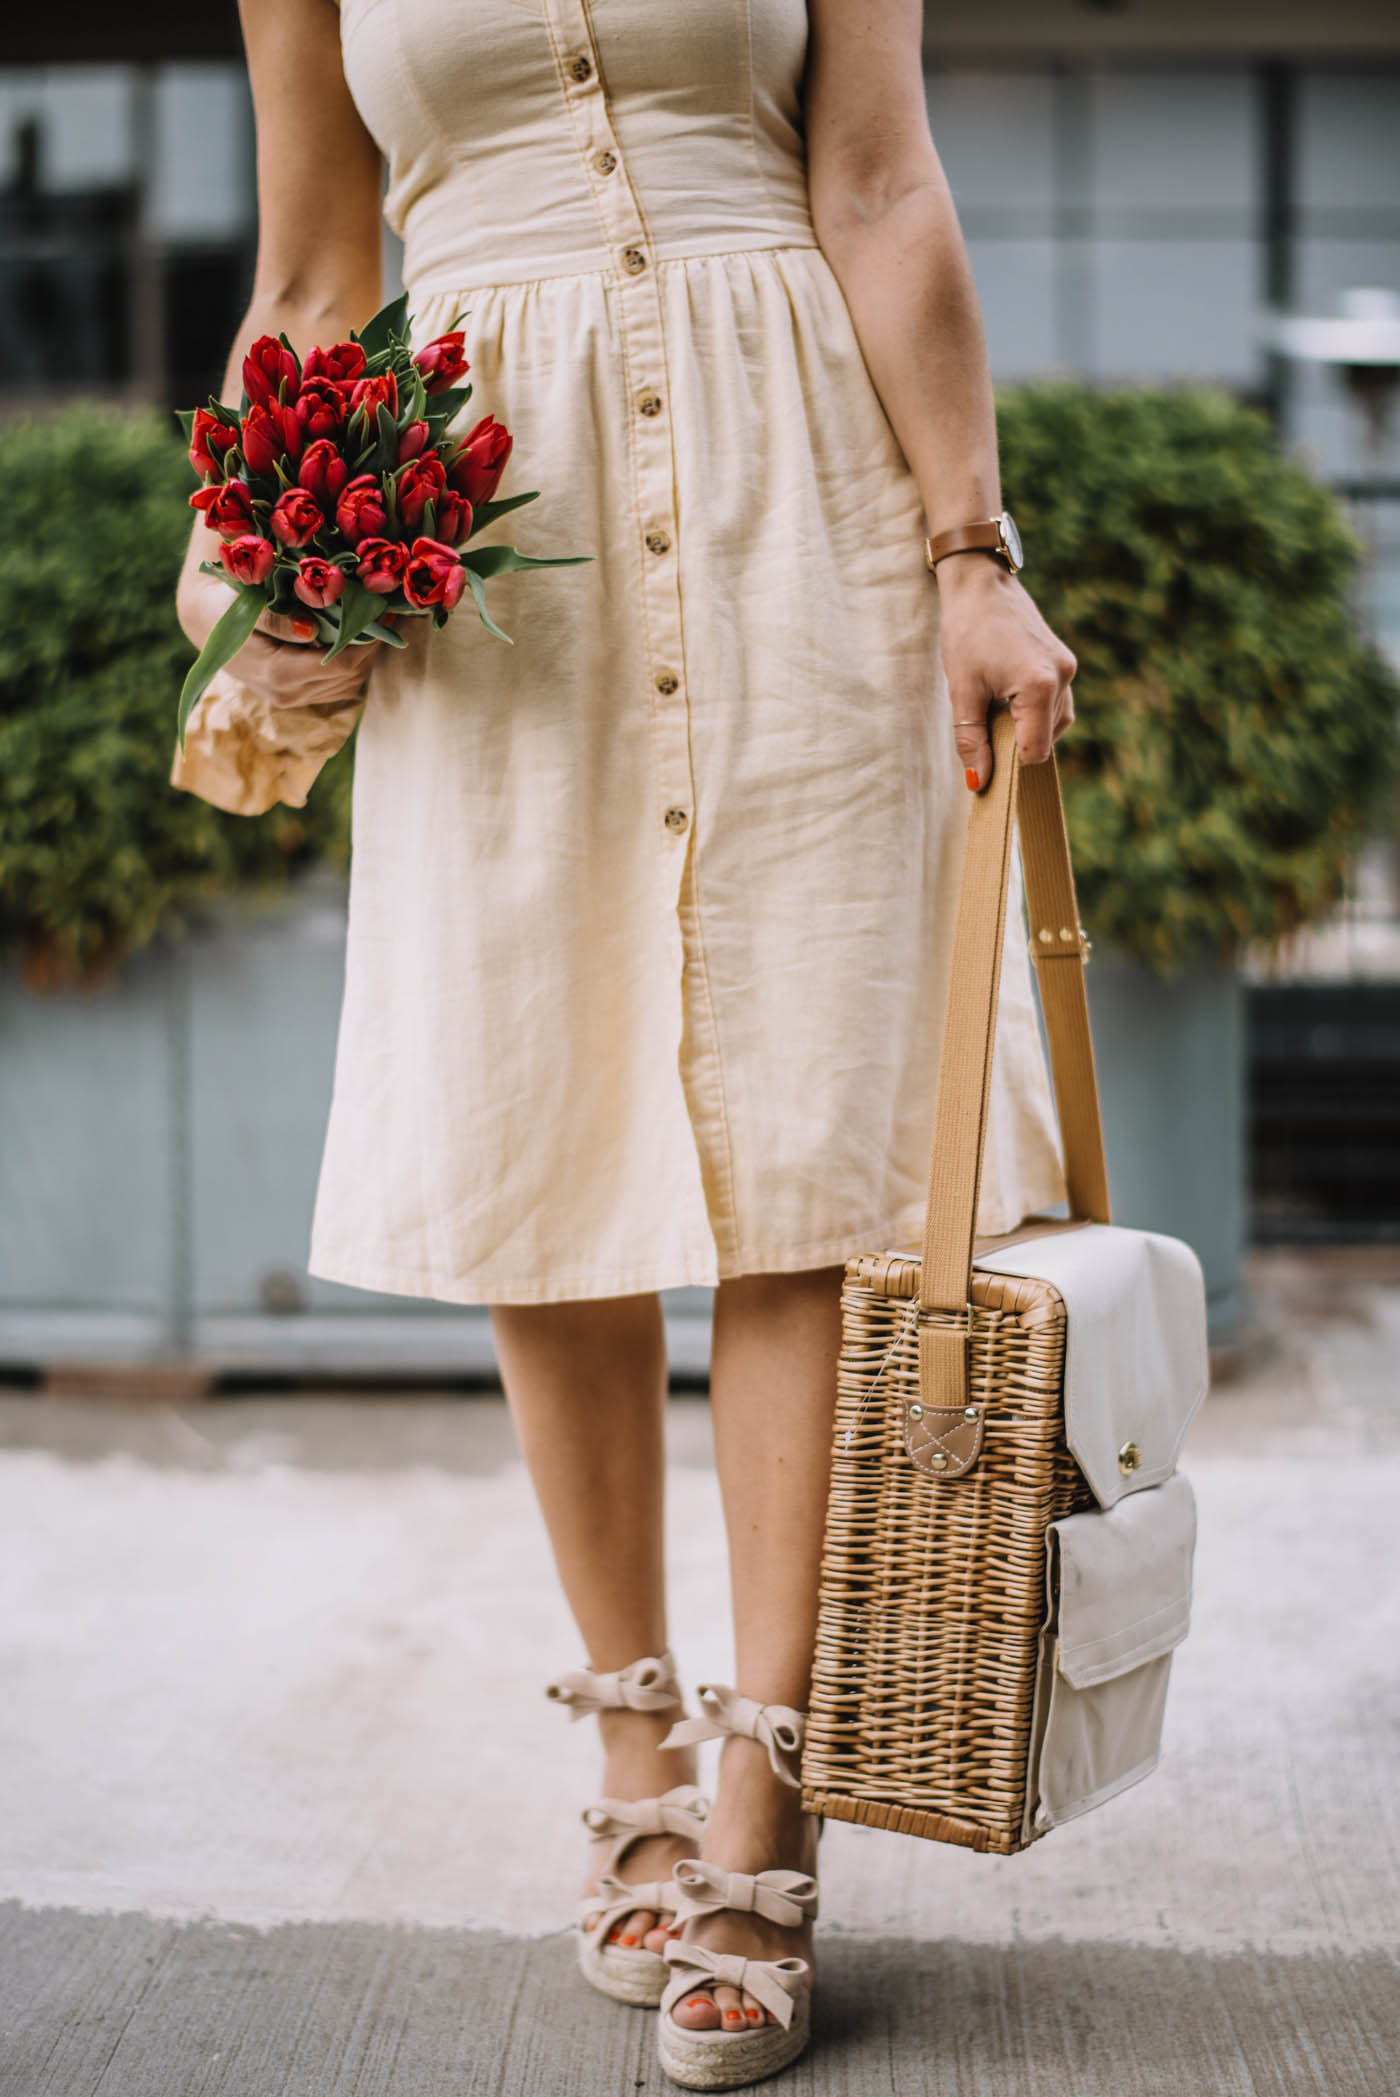 summer dress, wine bag, tulips, summer outfits - My Style Vita